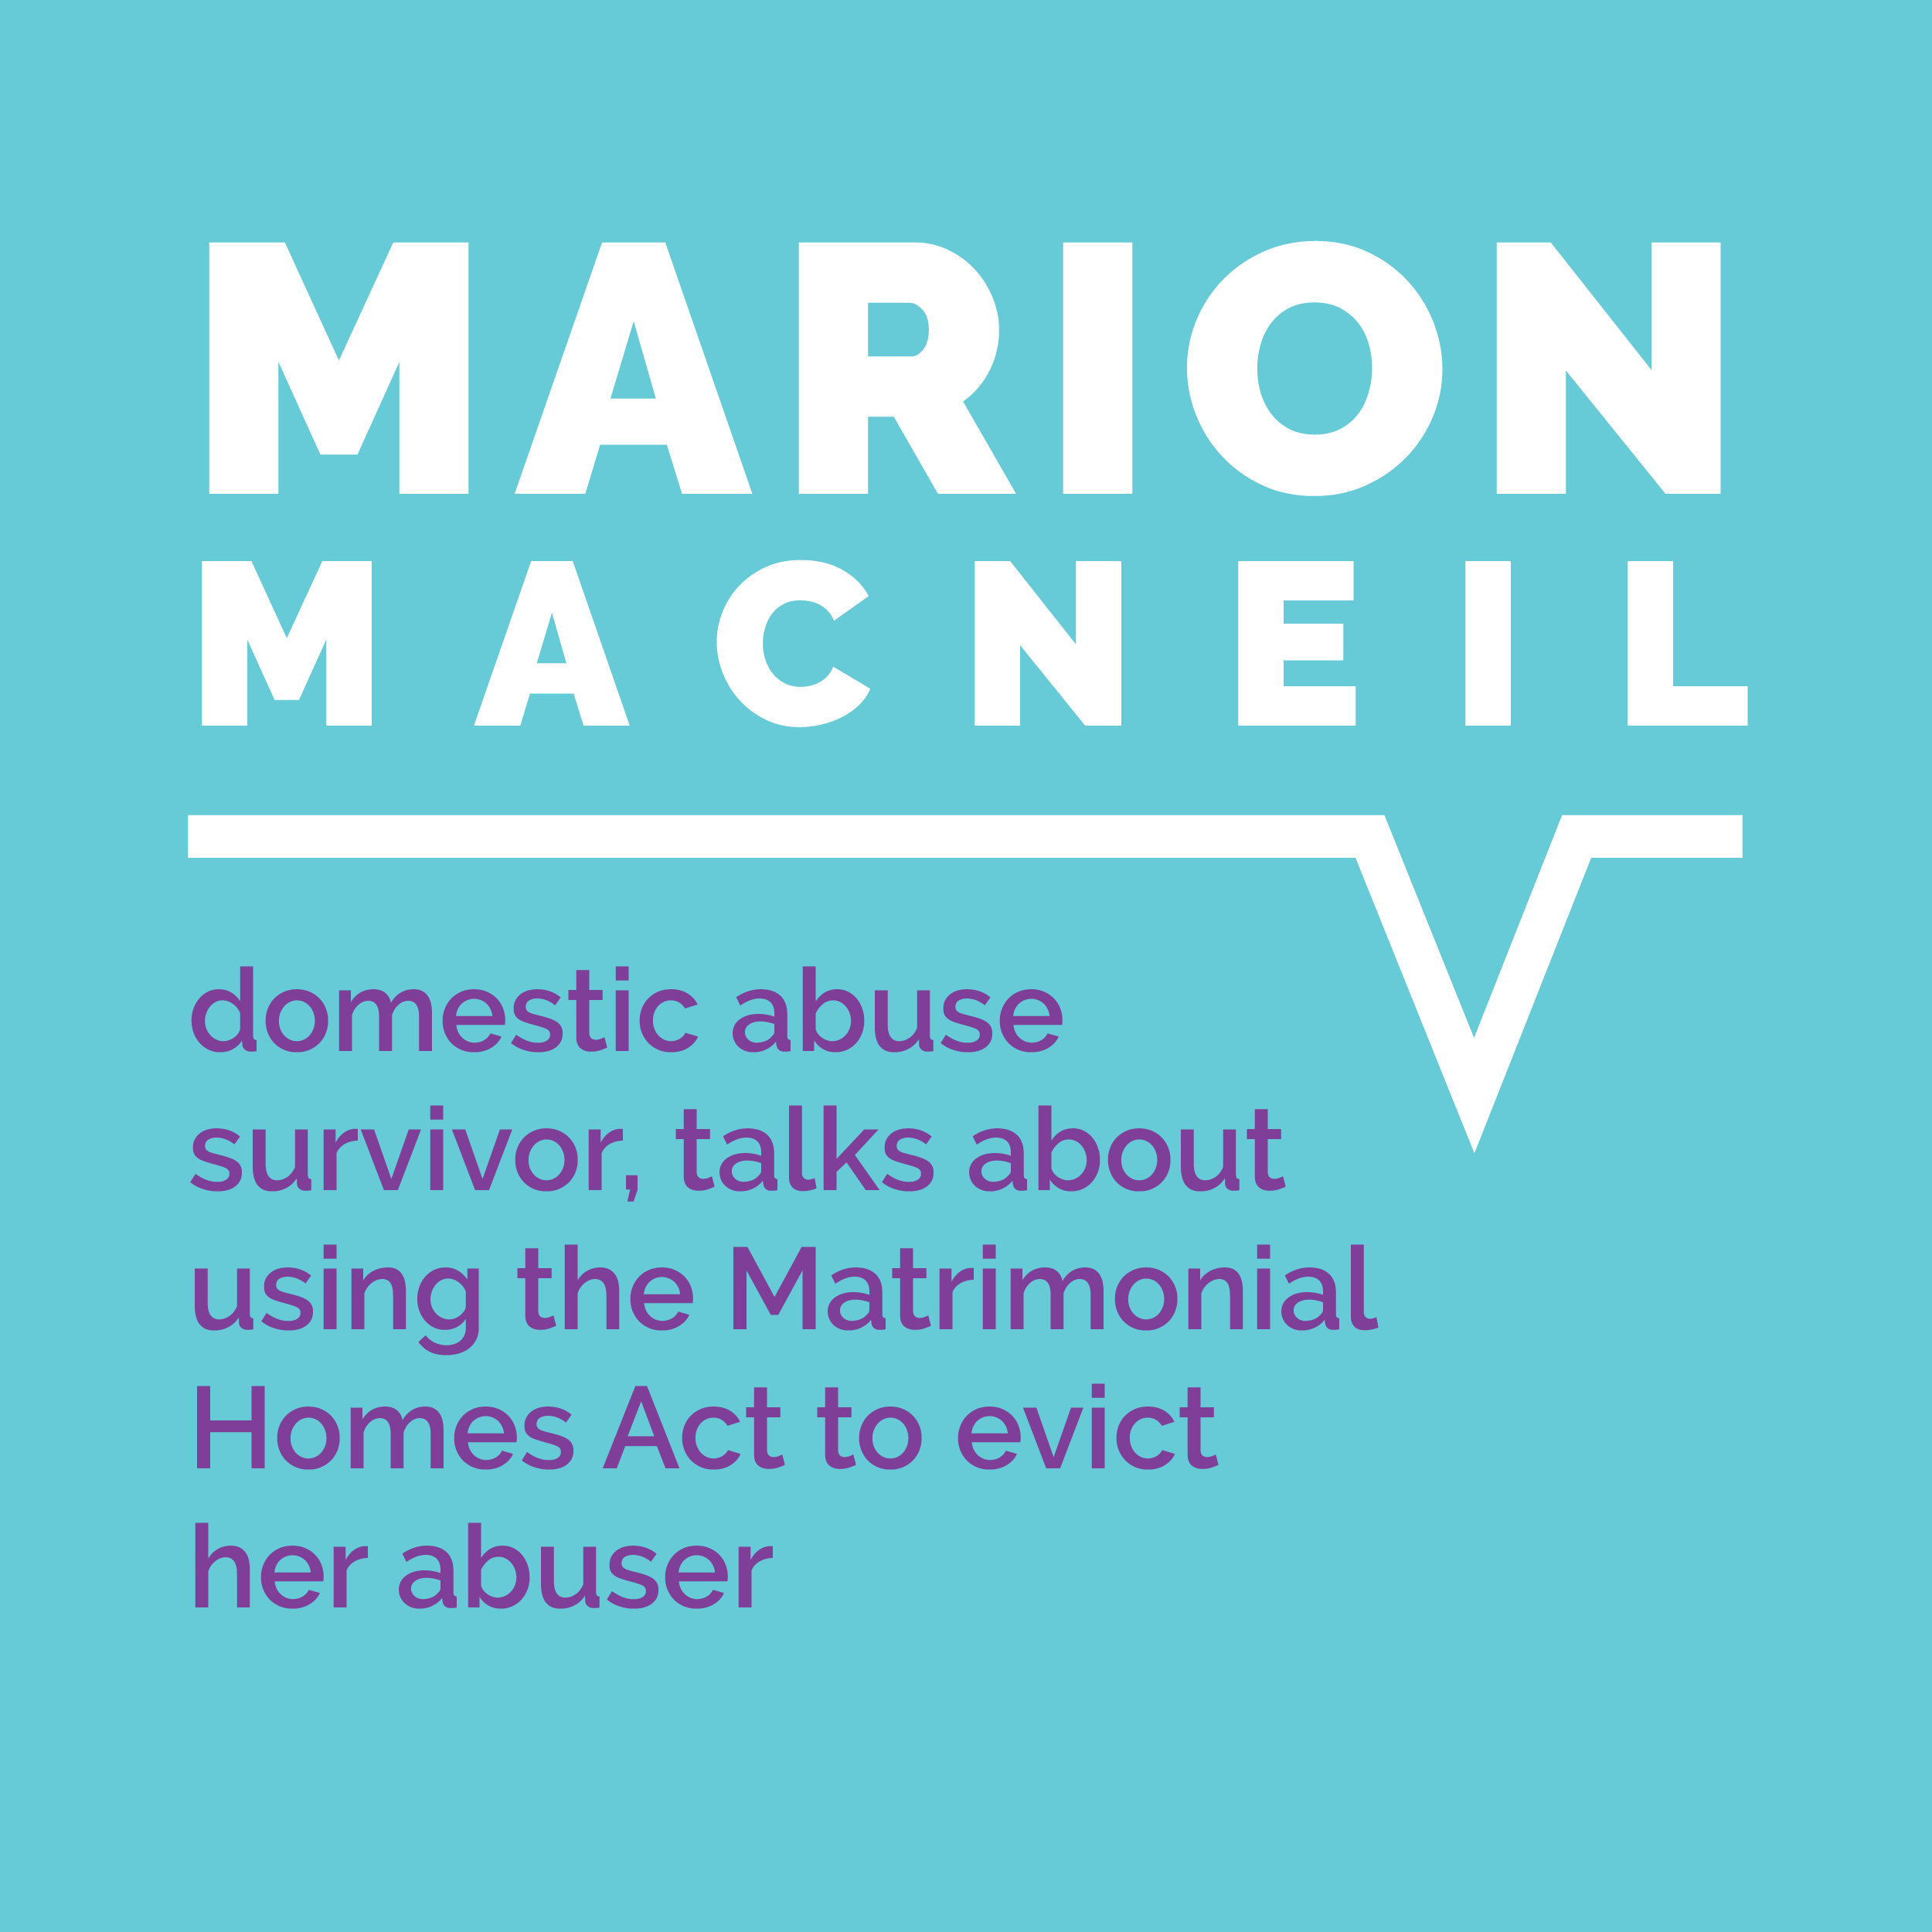 Marion MacNeil, domestic abuse survivor, talks about using the Matrimonial Homes Act to evict her abuser